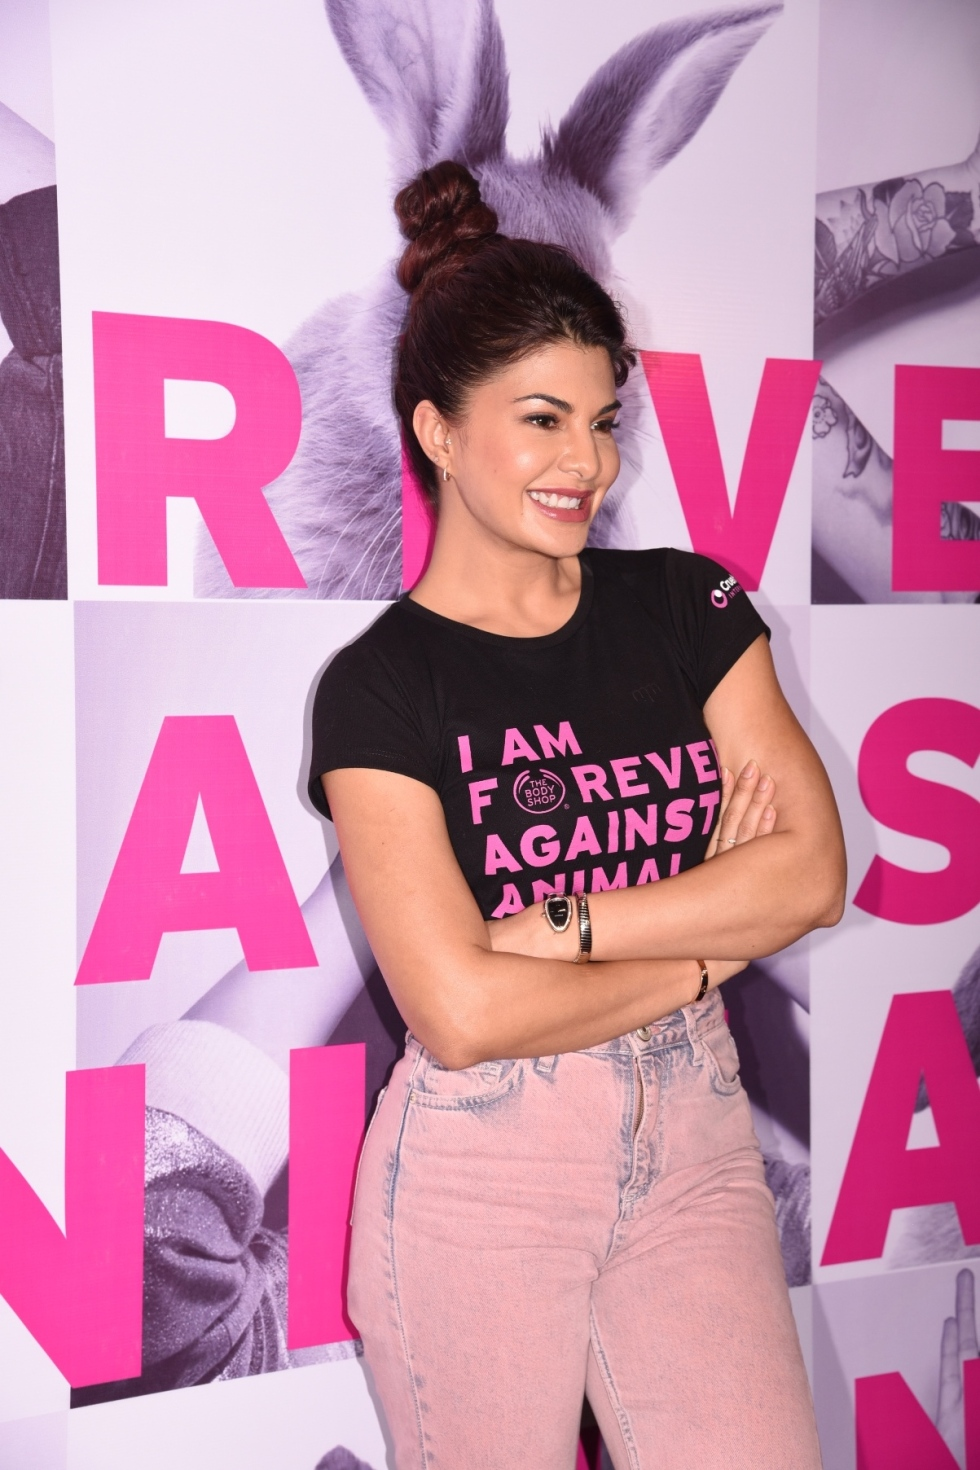 Jacqueline Fernandez, Brand Ambassador, The Body Shop at Forever Against Animal Testing Campaign Launch